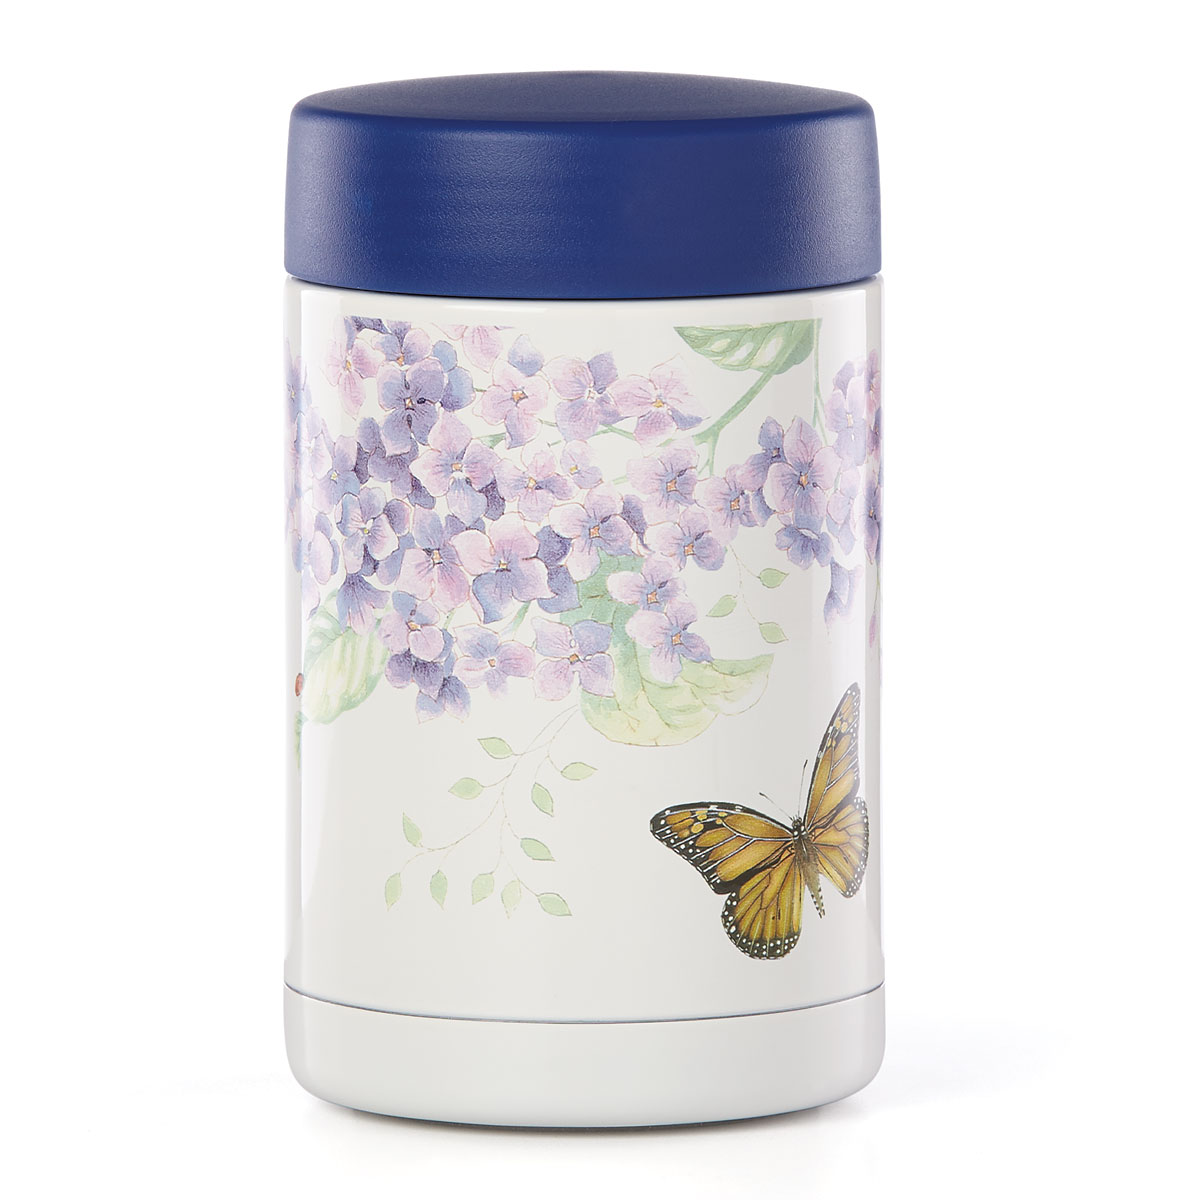 Lenox Butterfly Meadow Dinnerware Insulated Food Container Lg